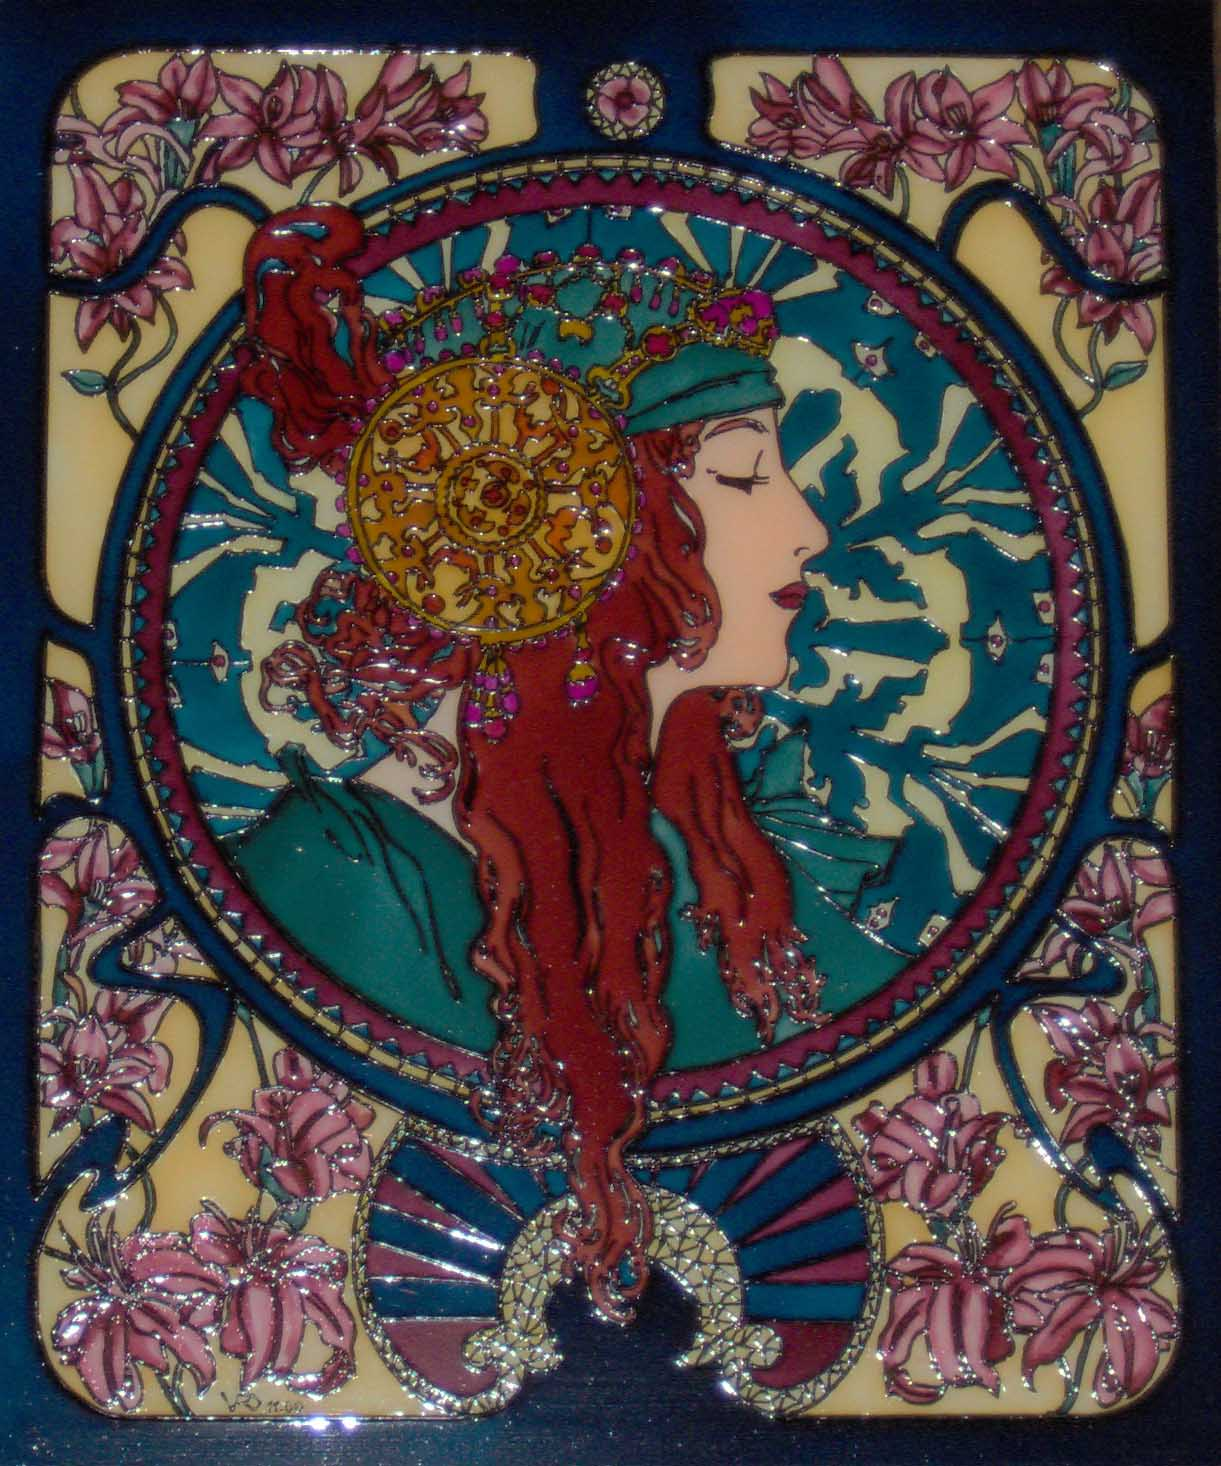 Art Nouveau 04 by mohamed ufo 1221x1466